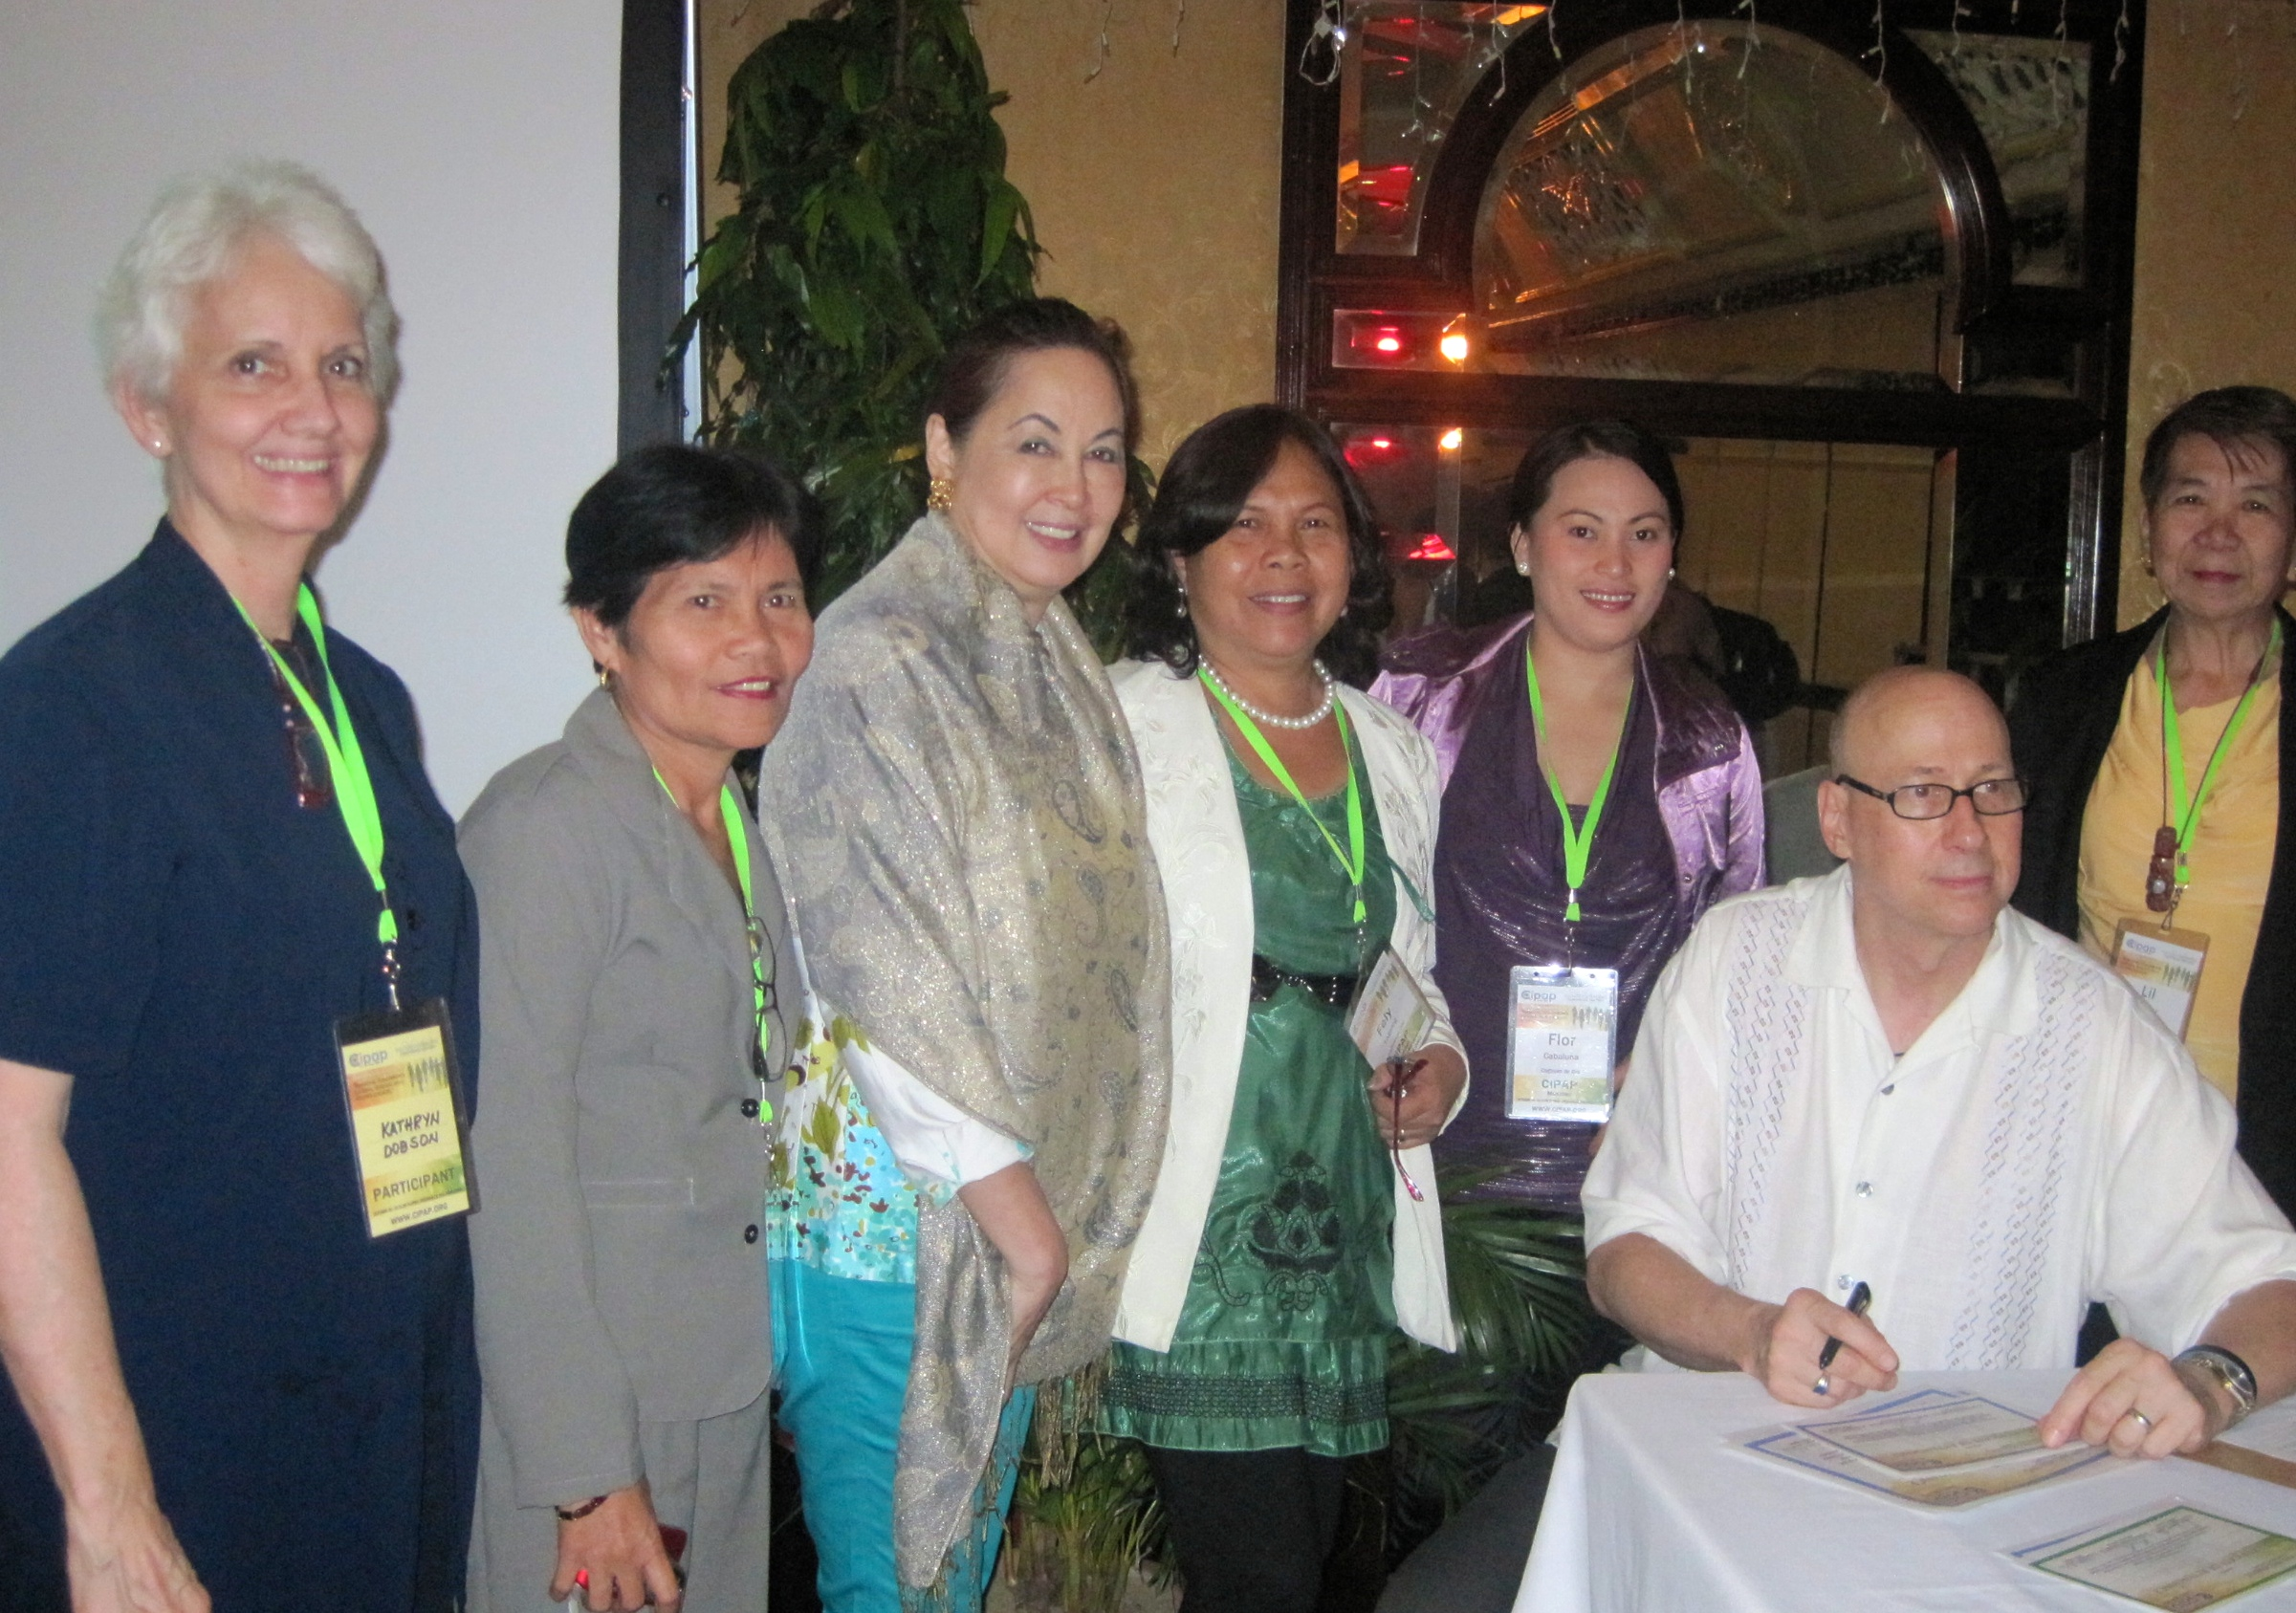 Jack Tips signs certifications for Filipina medical and natural health practitioners, Manila, 2010